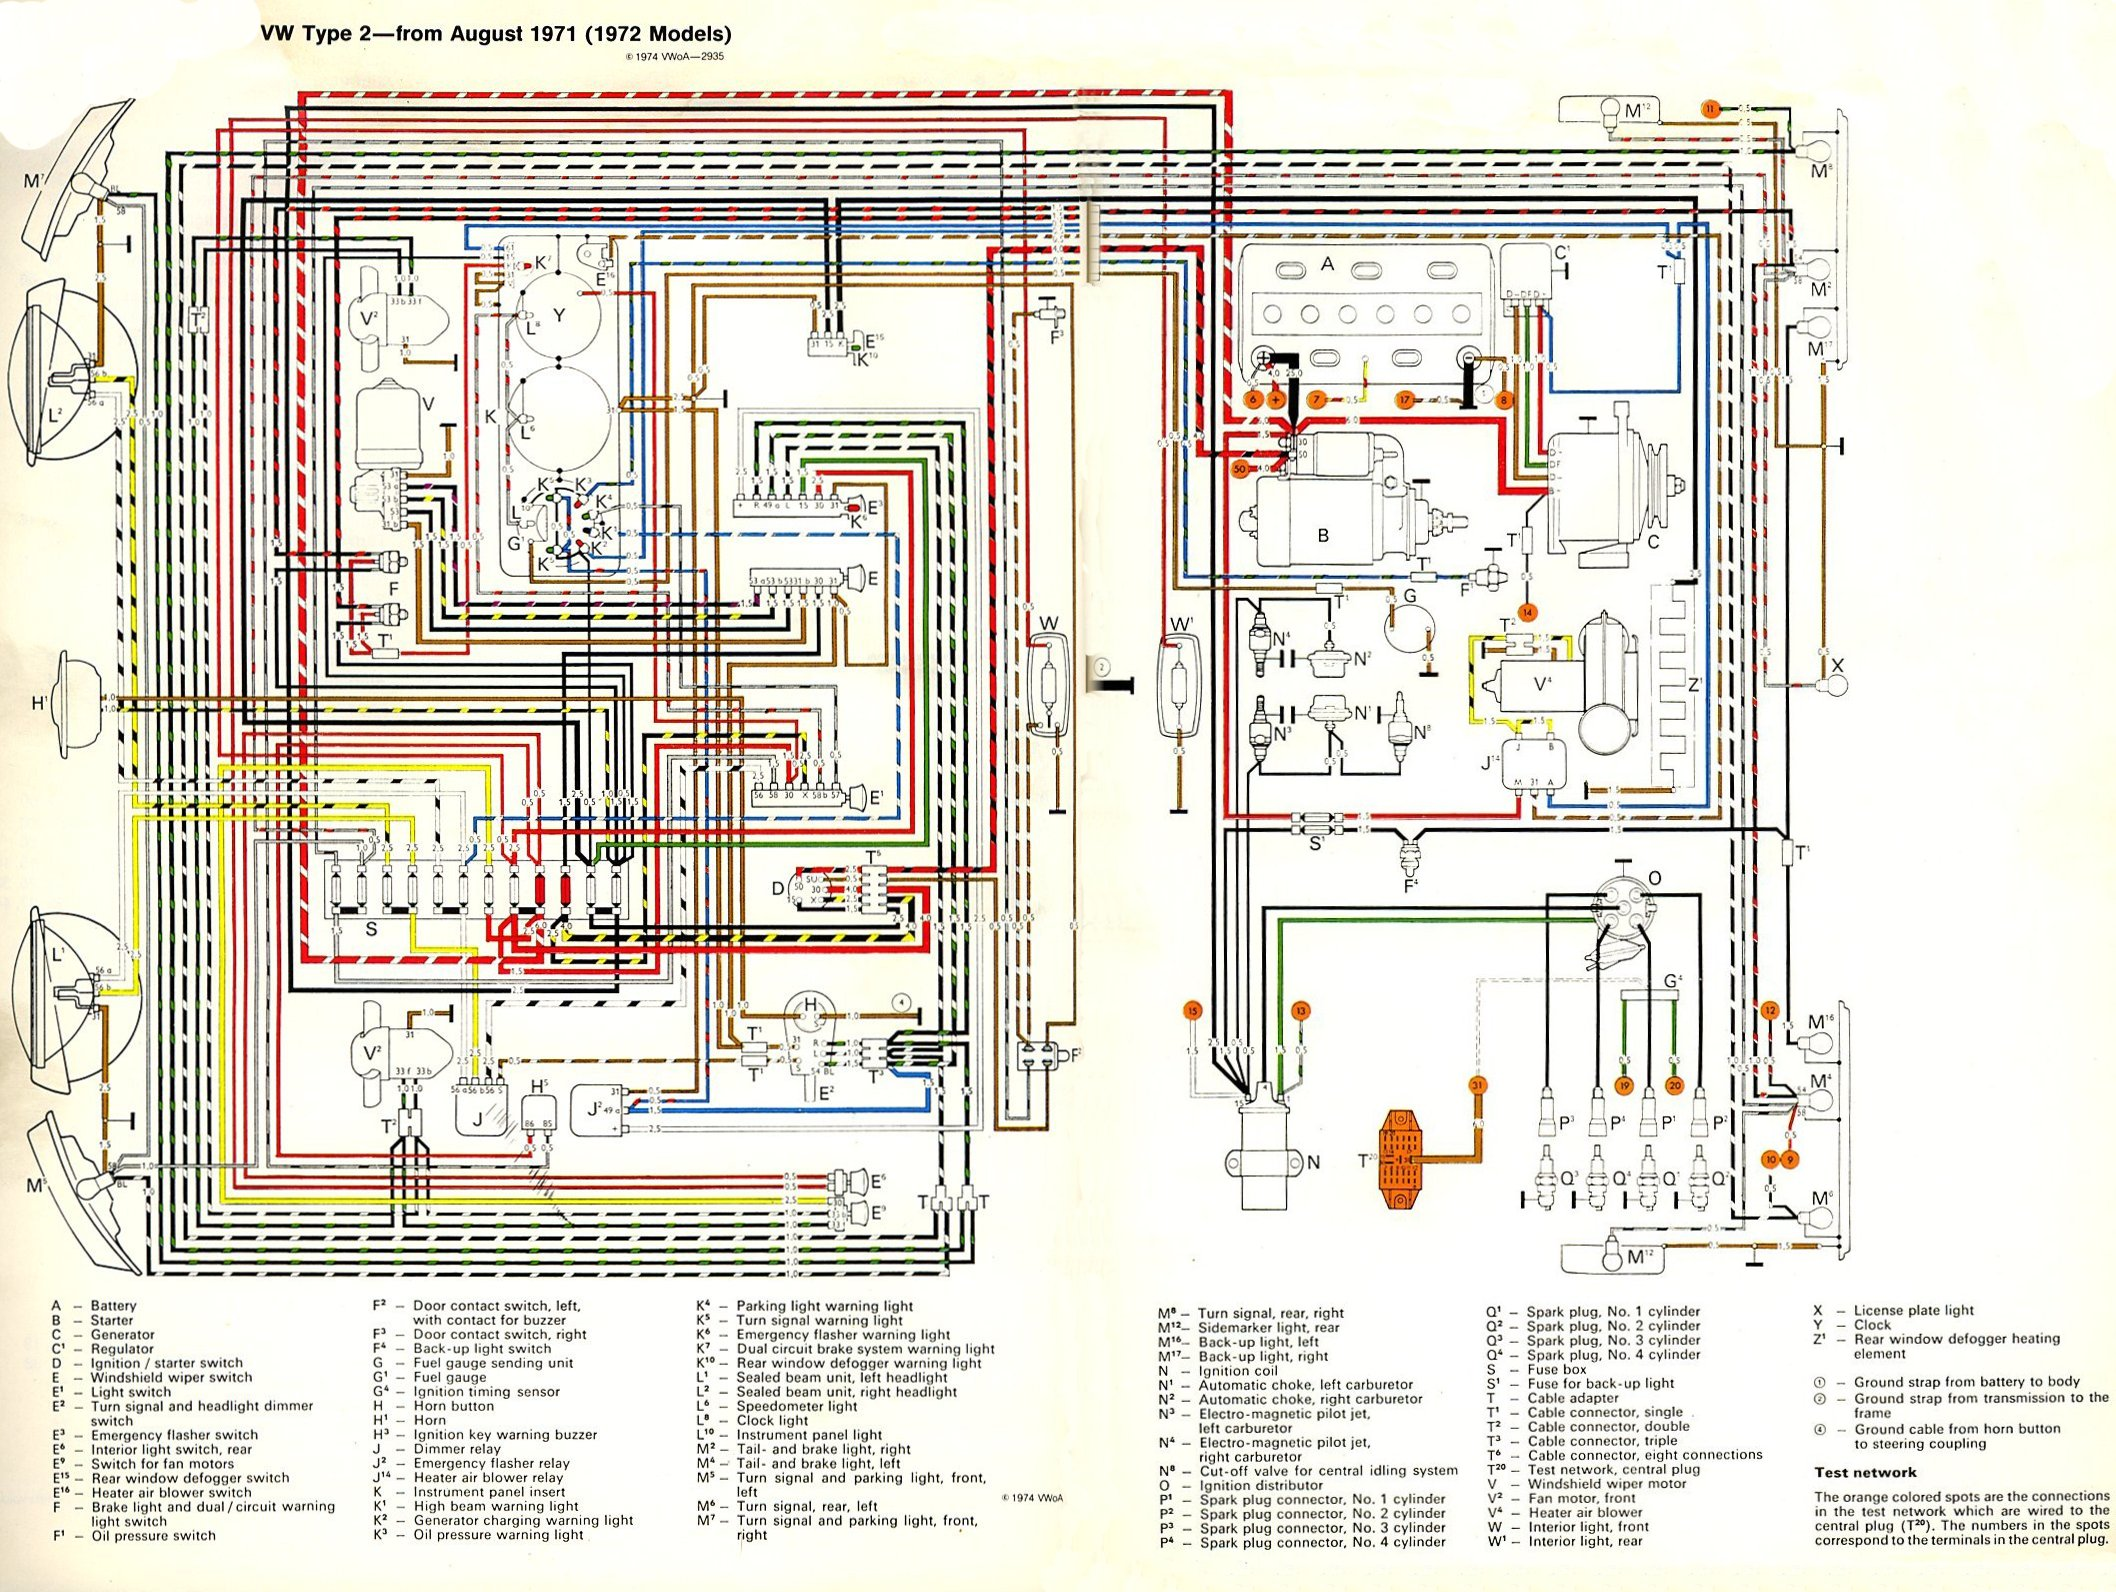 bus_1972_wiring wiring diagram for 1971 vw beetle the wiring diagram 1975 c10 wiring diagram at cos-gaming.co